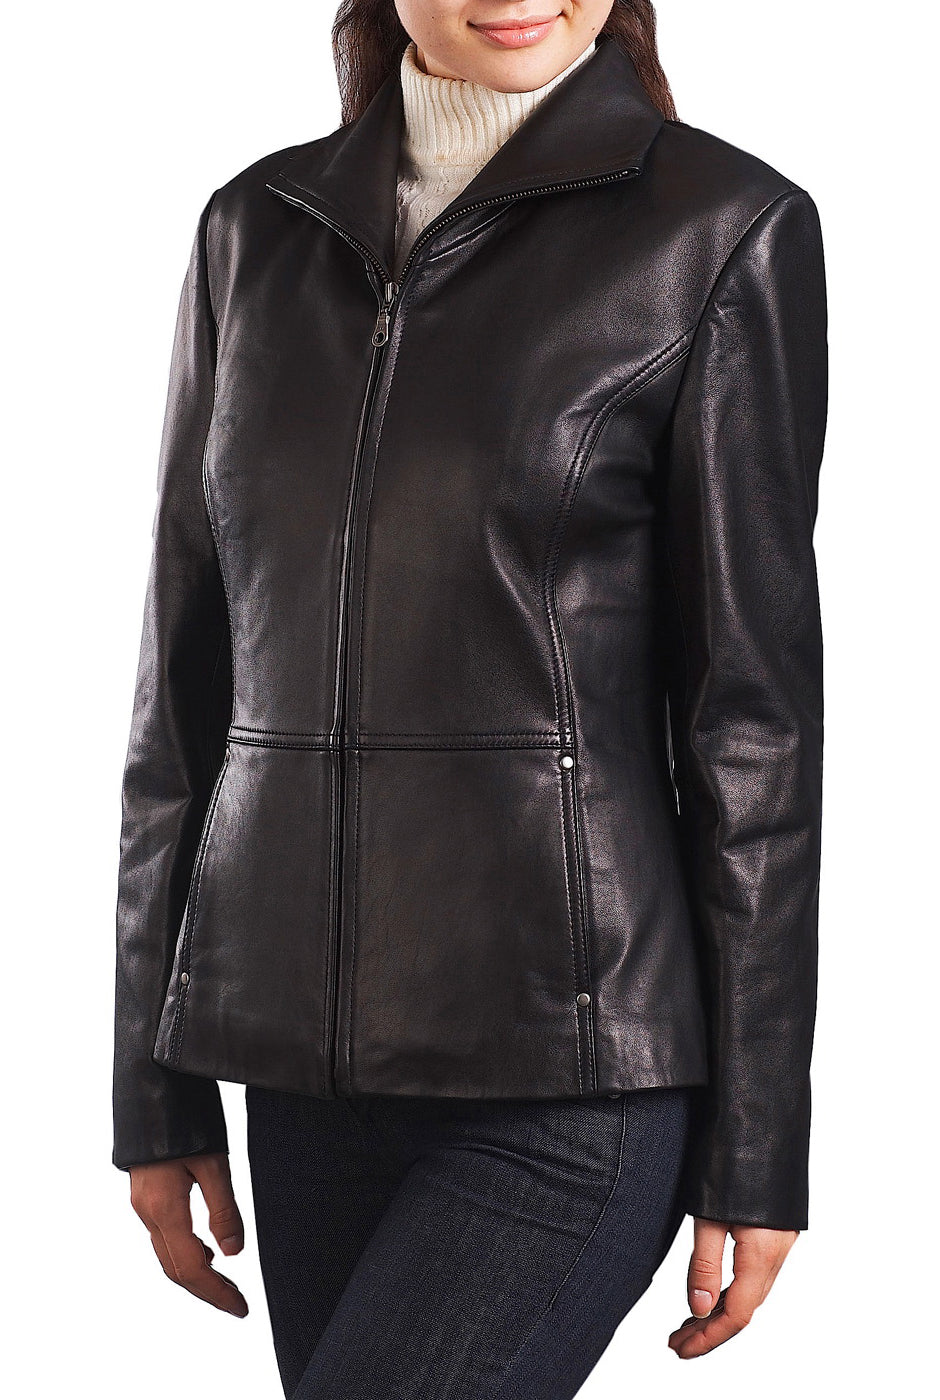 bgsd womens wing collar lambskin leather scuba jacket plus